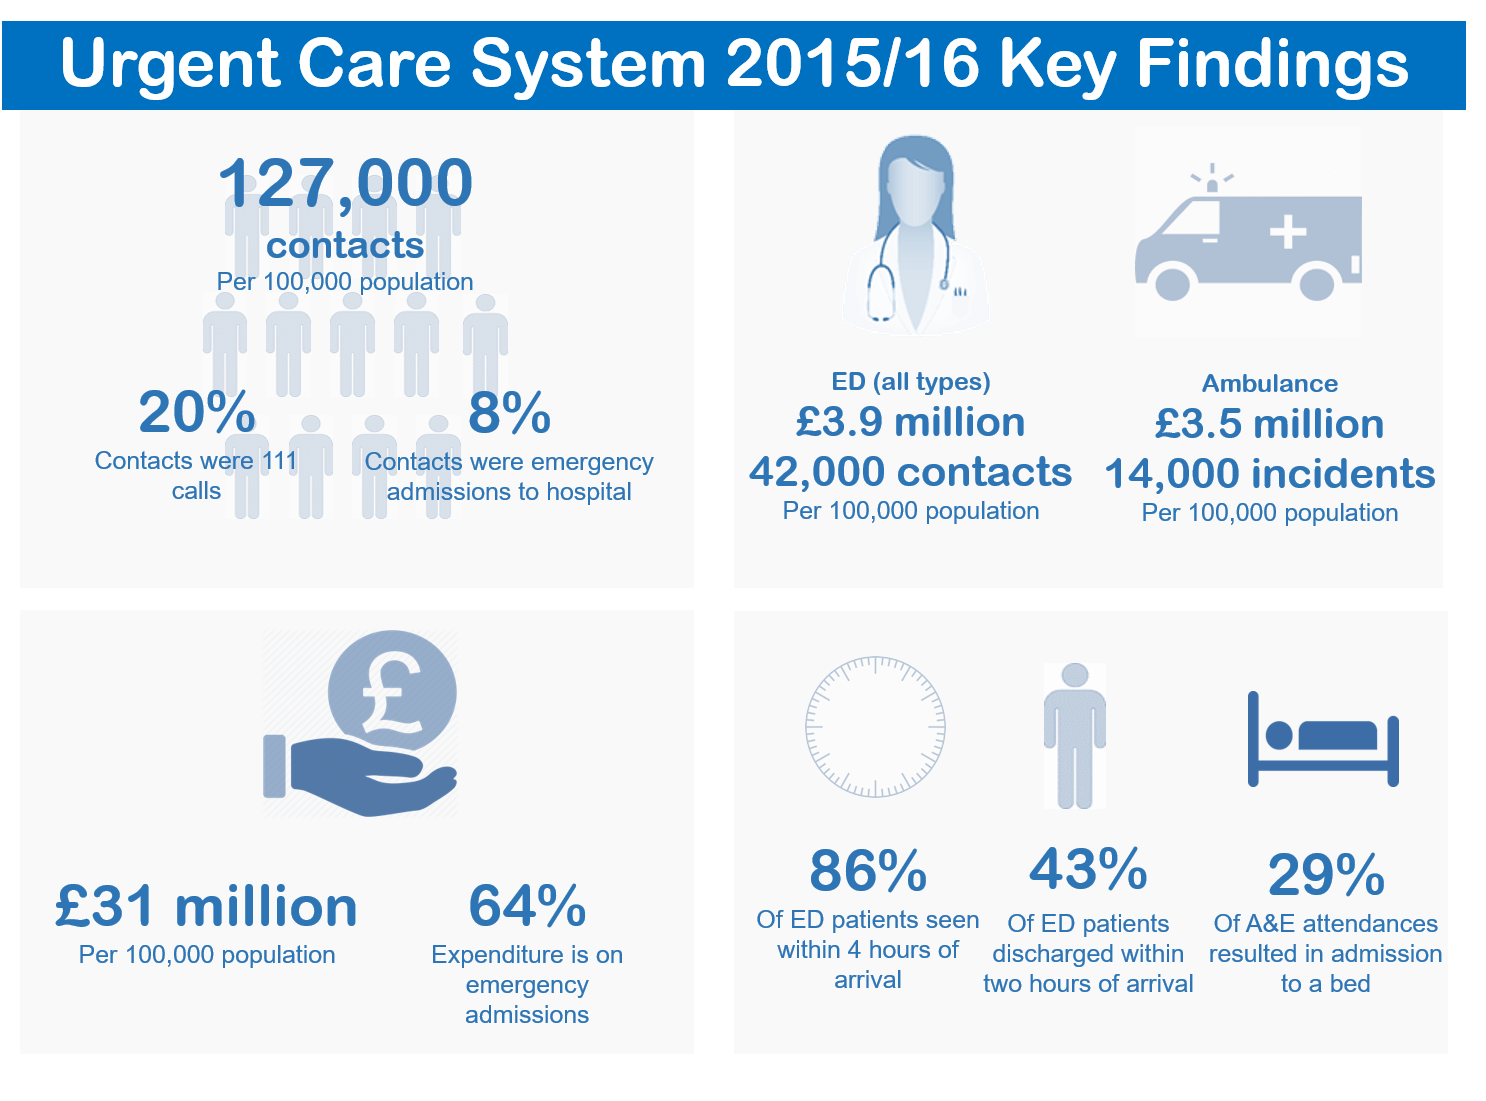 Urgent Care System 2015/16 Key Findings